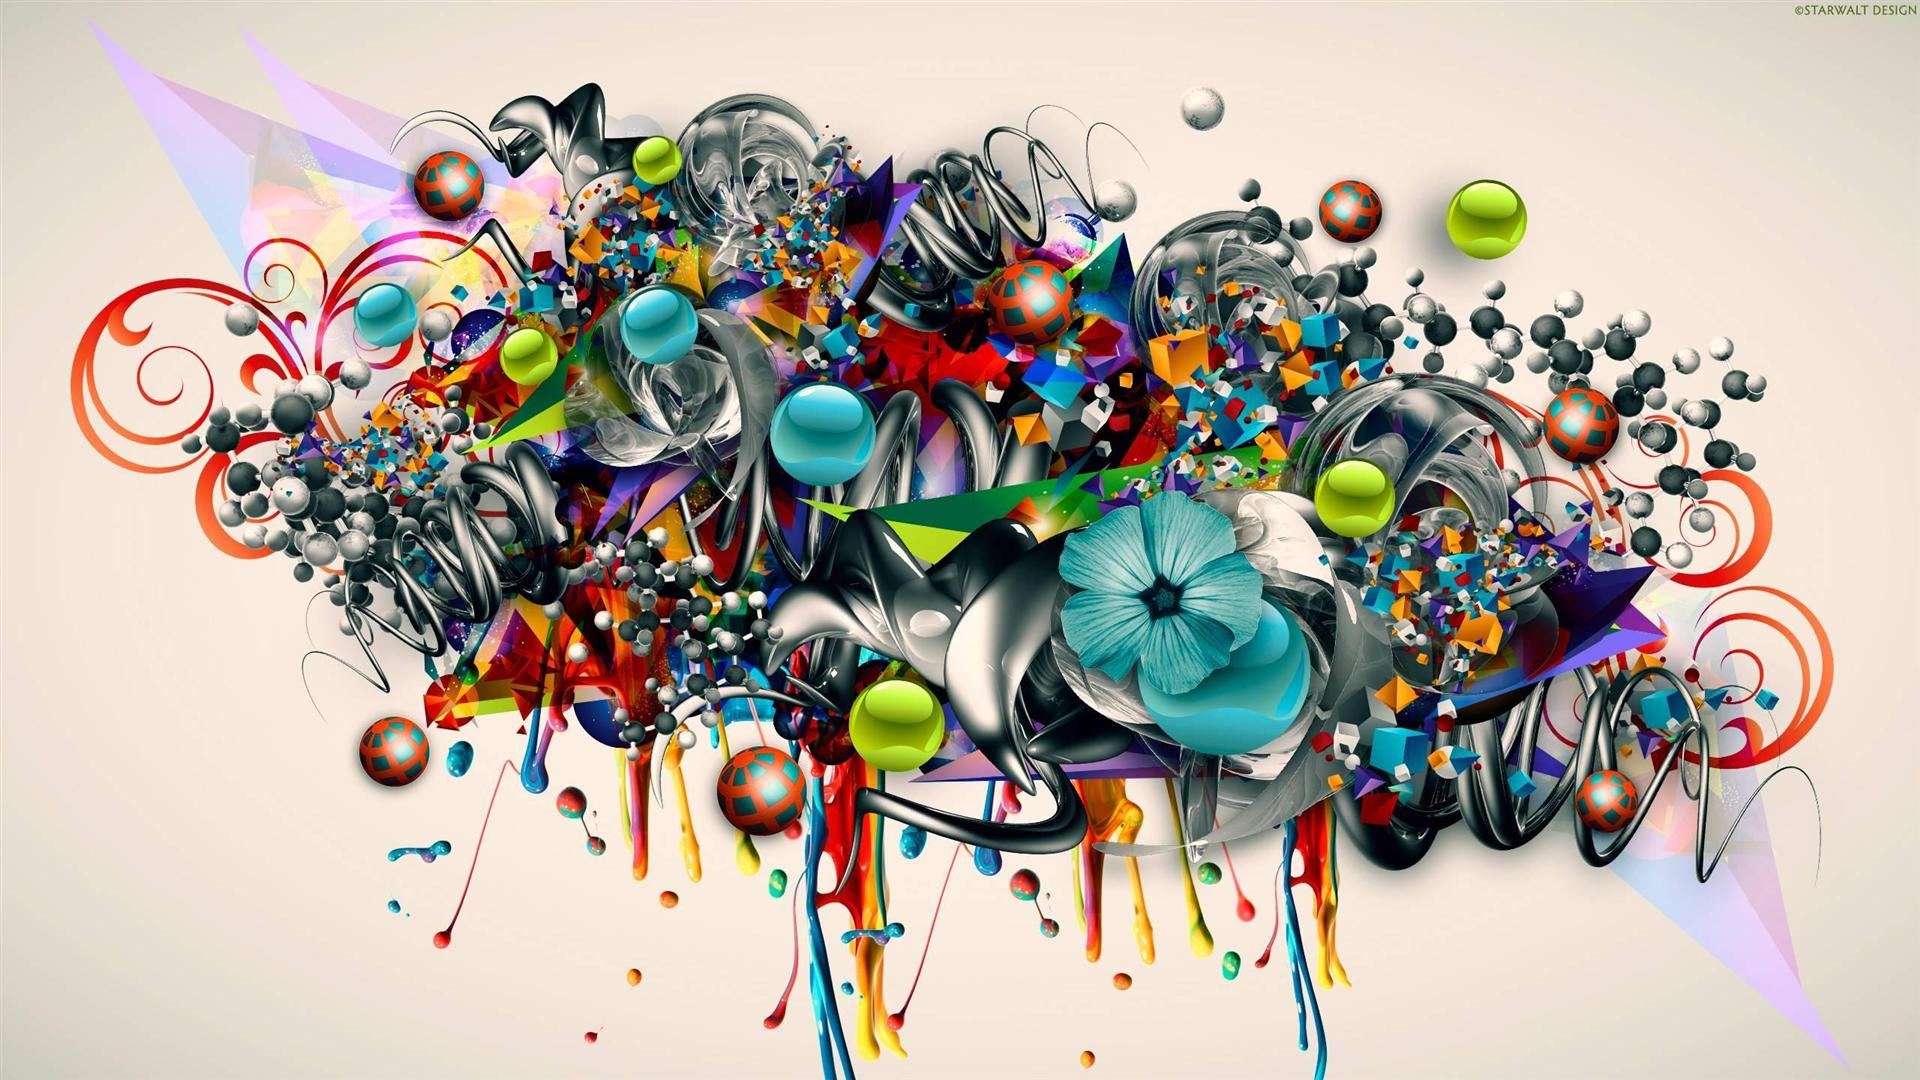 Graffiti Wallpaper Desktop Free Download